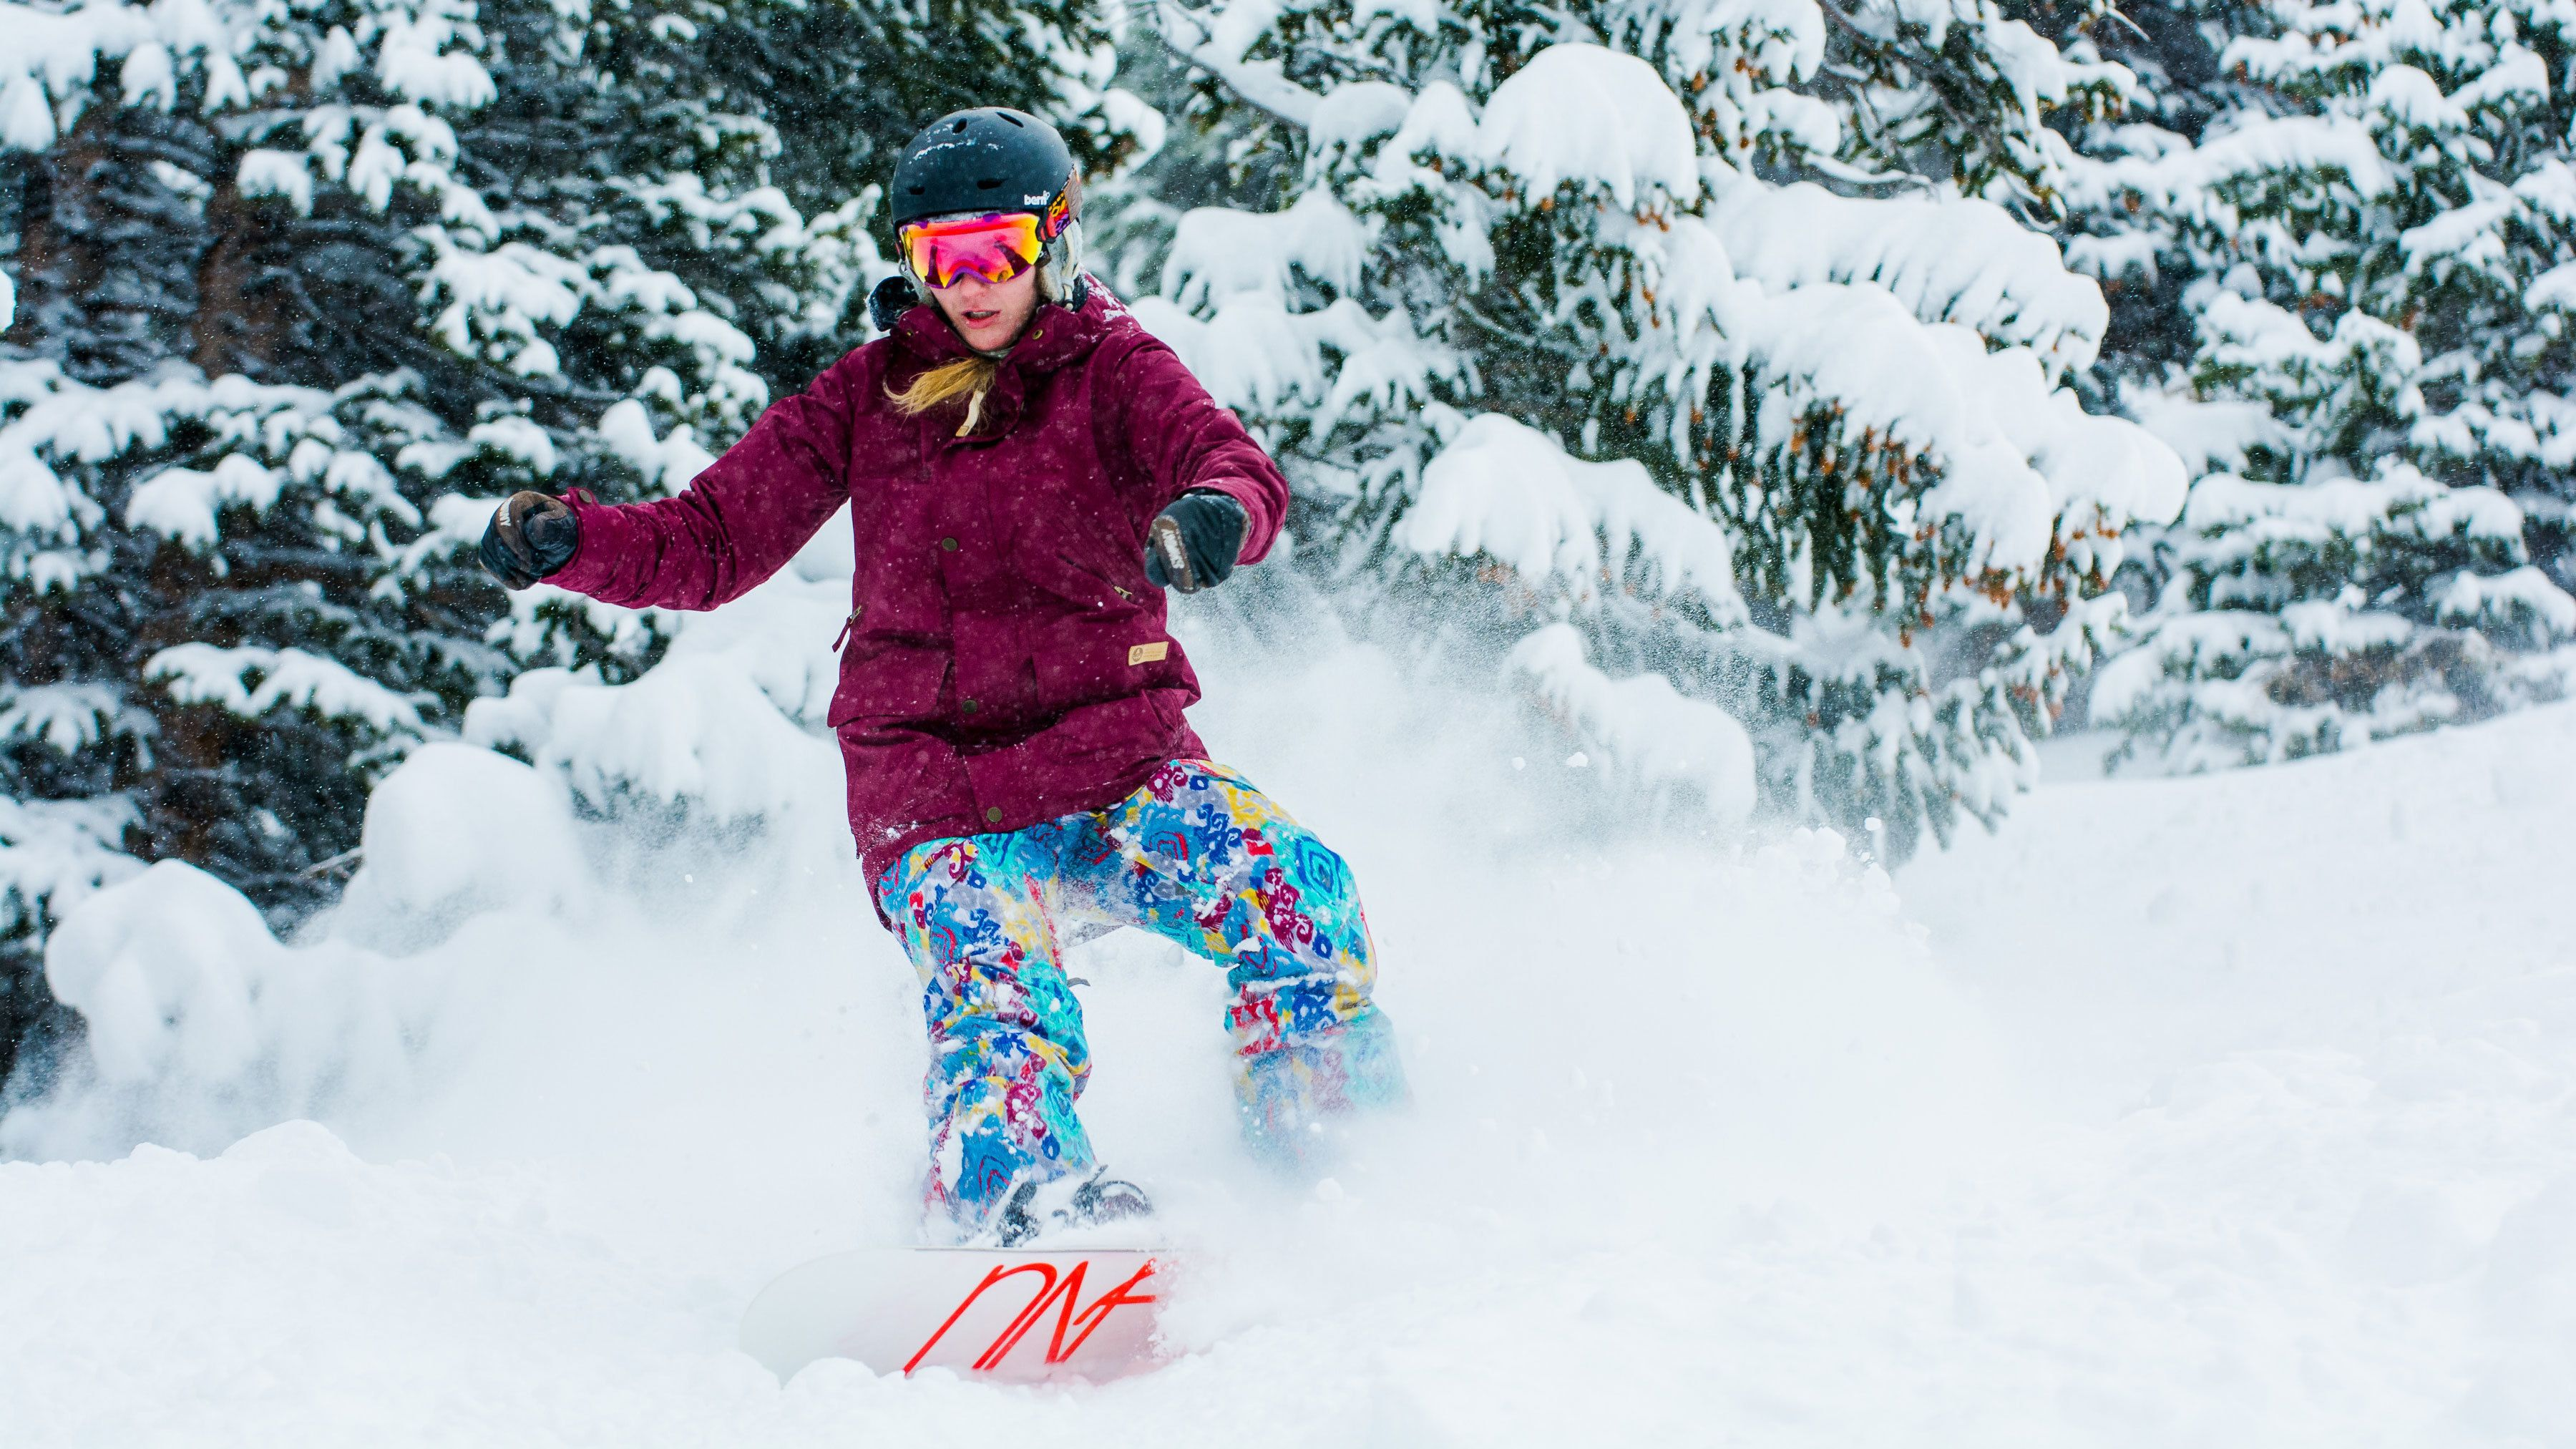 Snowboarding woman on the slopes